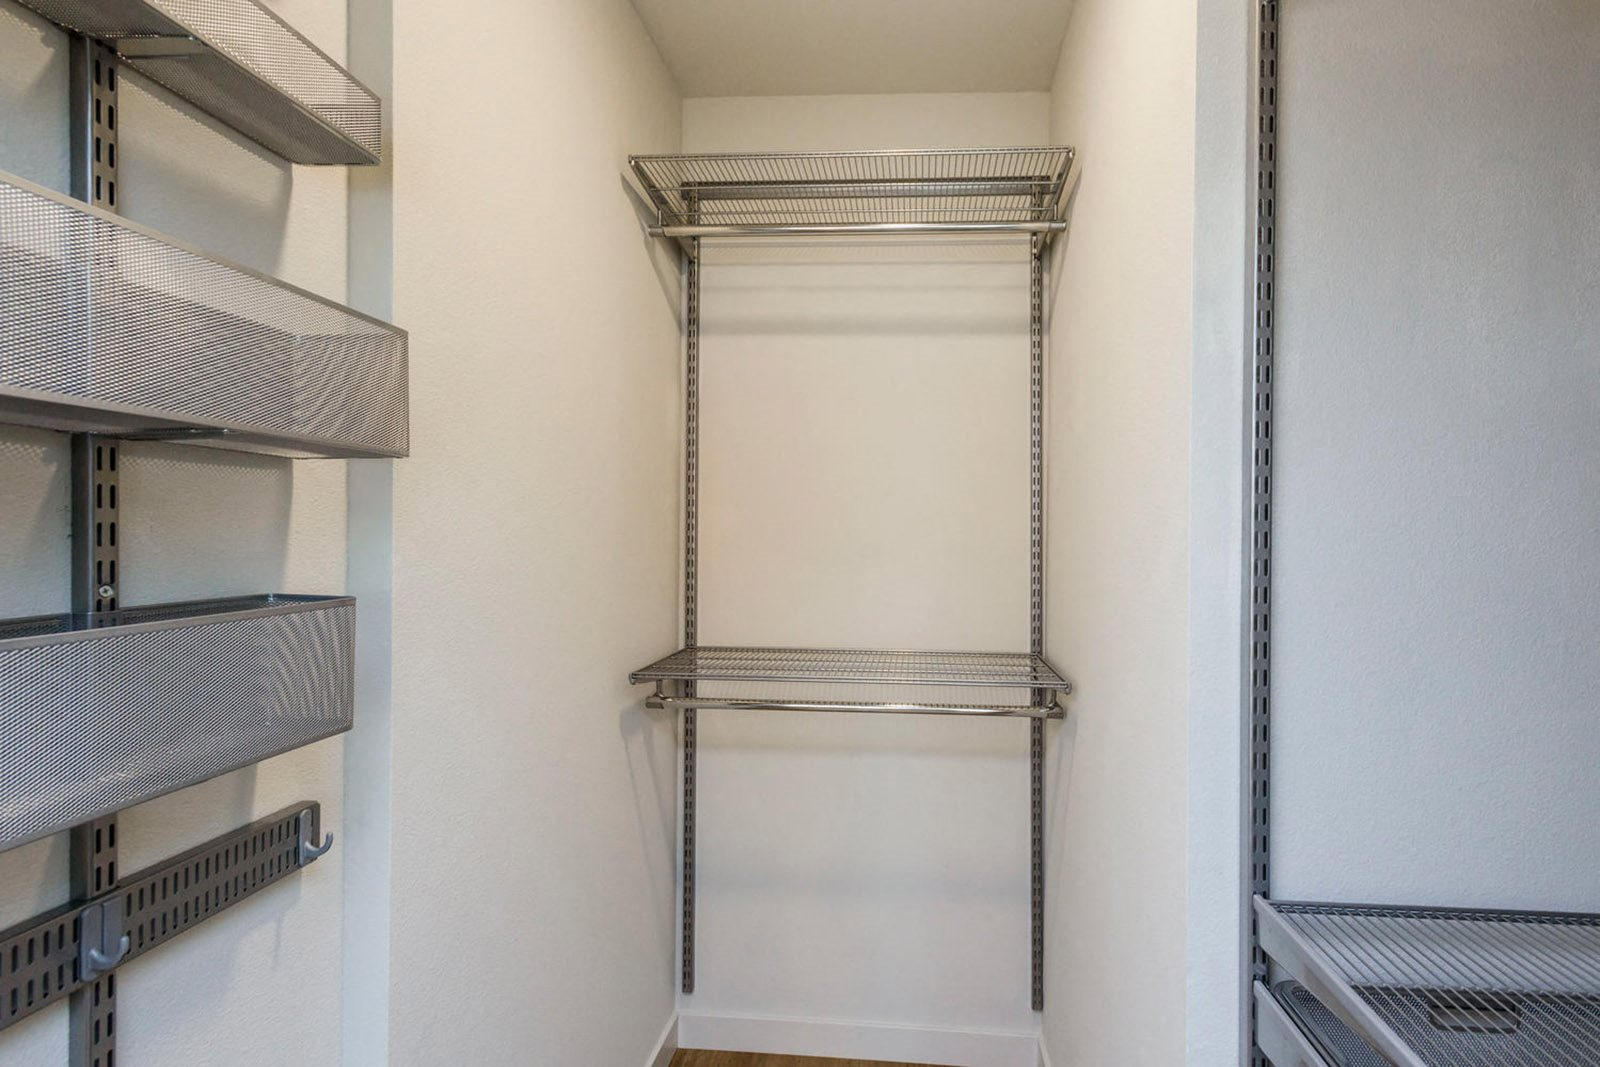 ModelHomes-Built-in shelving system in select apartments